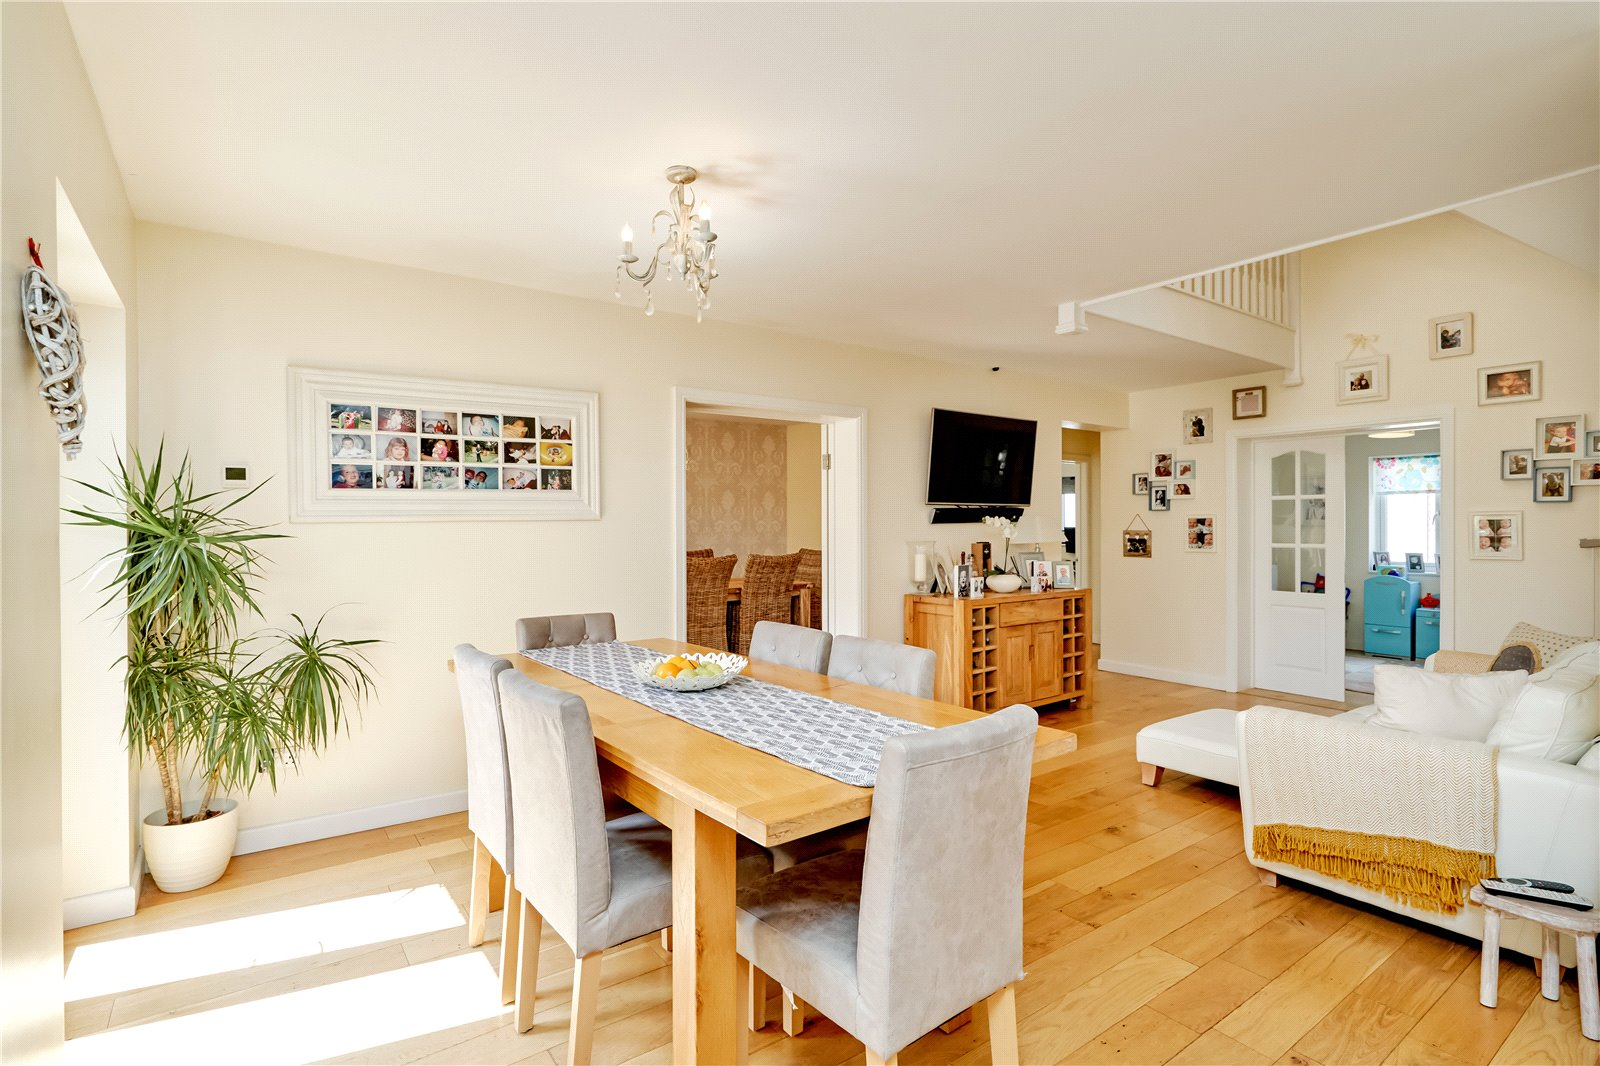 4 bed house for sale in Welwyn, AL6 0QG  - Property Image 13